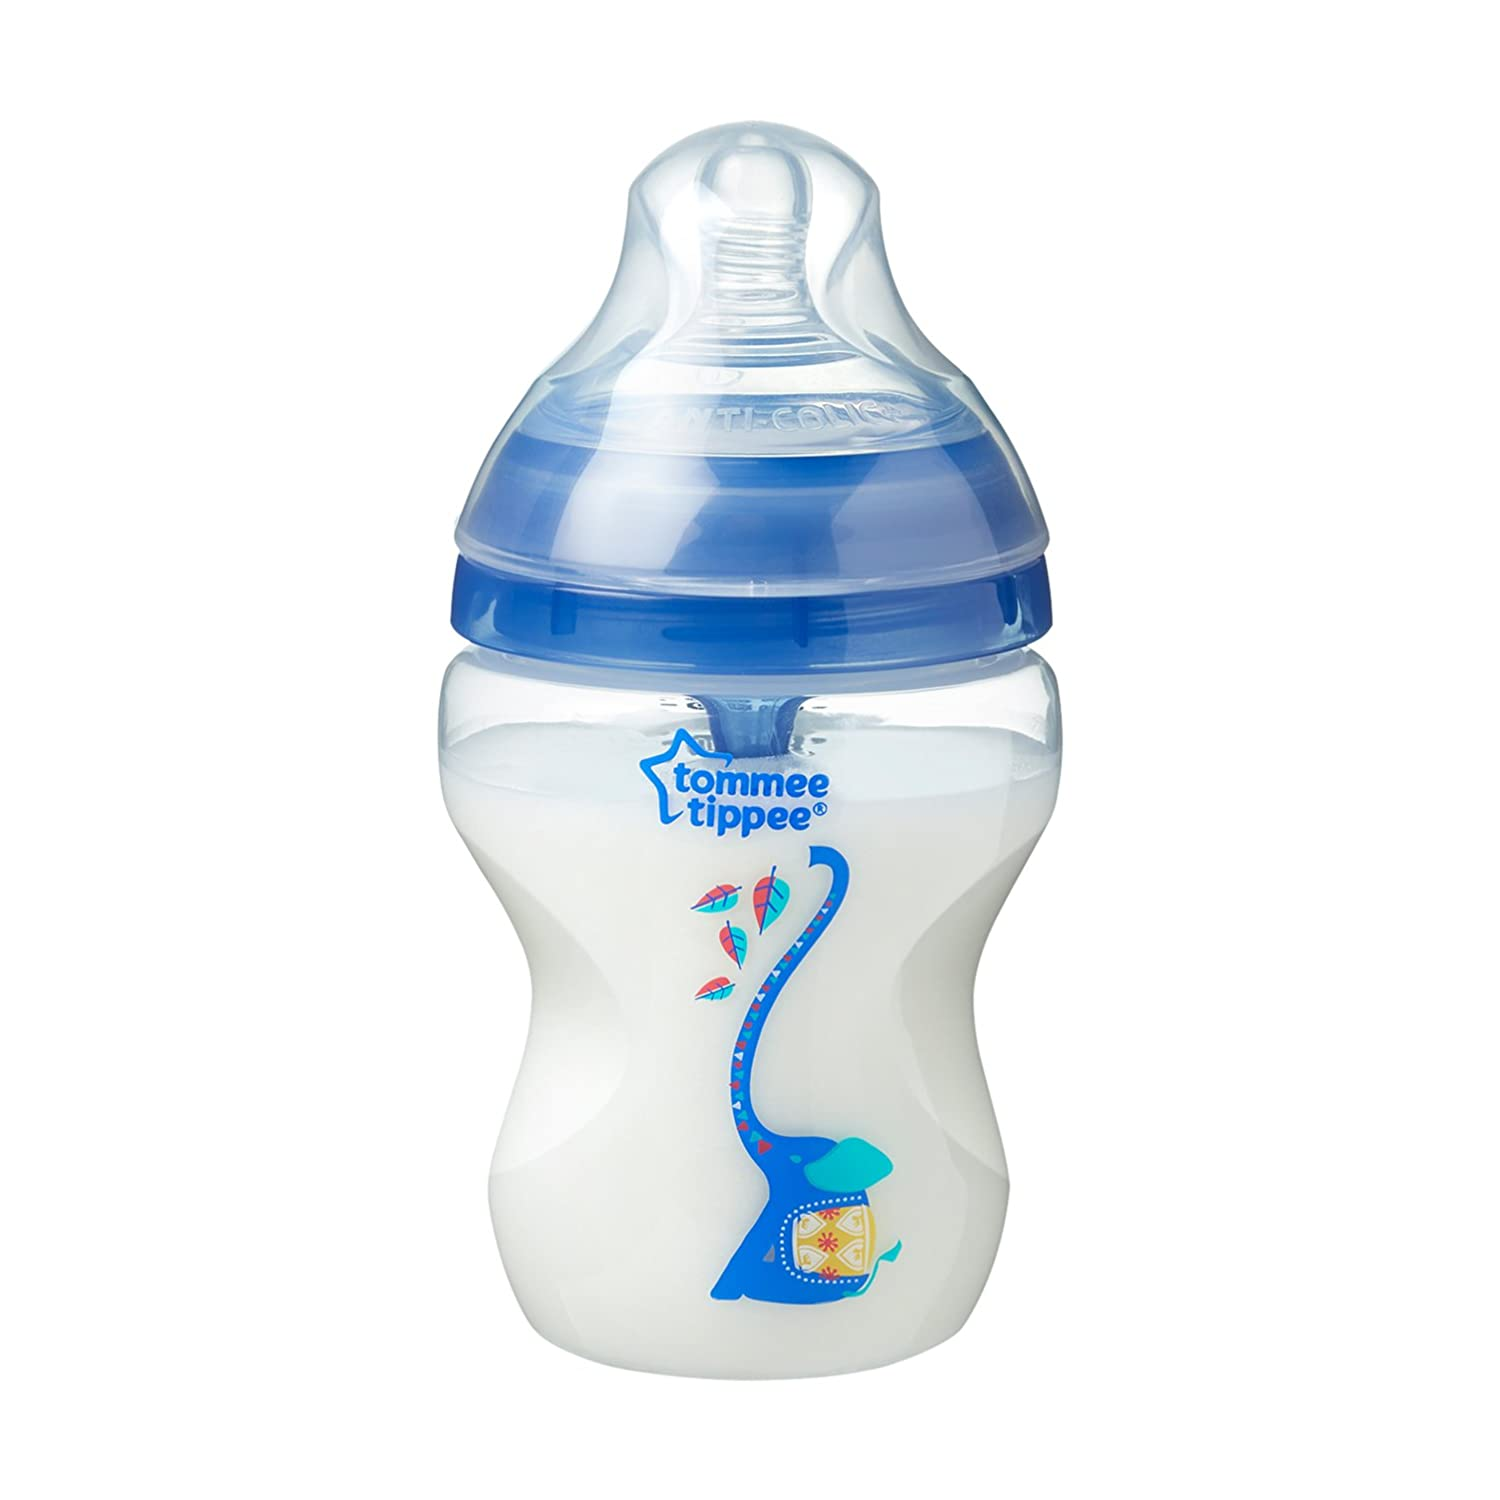 Heat-Sensing Technology 9 Ounce Tommee Tippee Advanced Anti-Colic Baby Bottle BPA-Free Slow Flow Breast-Like Nipple 2 Count Blue